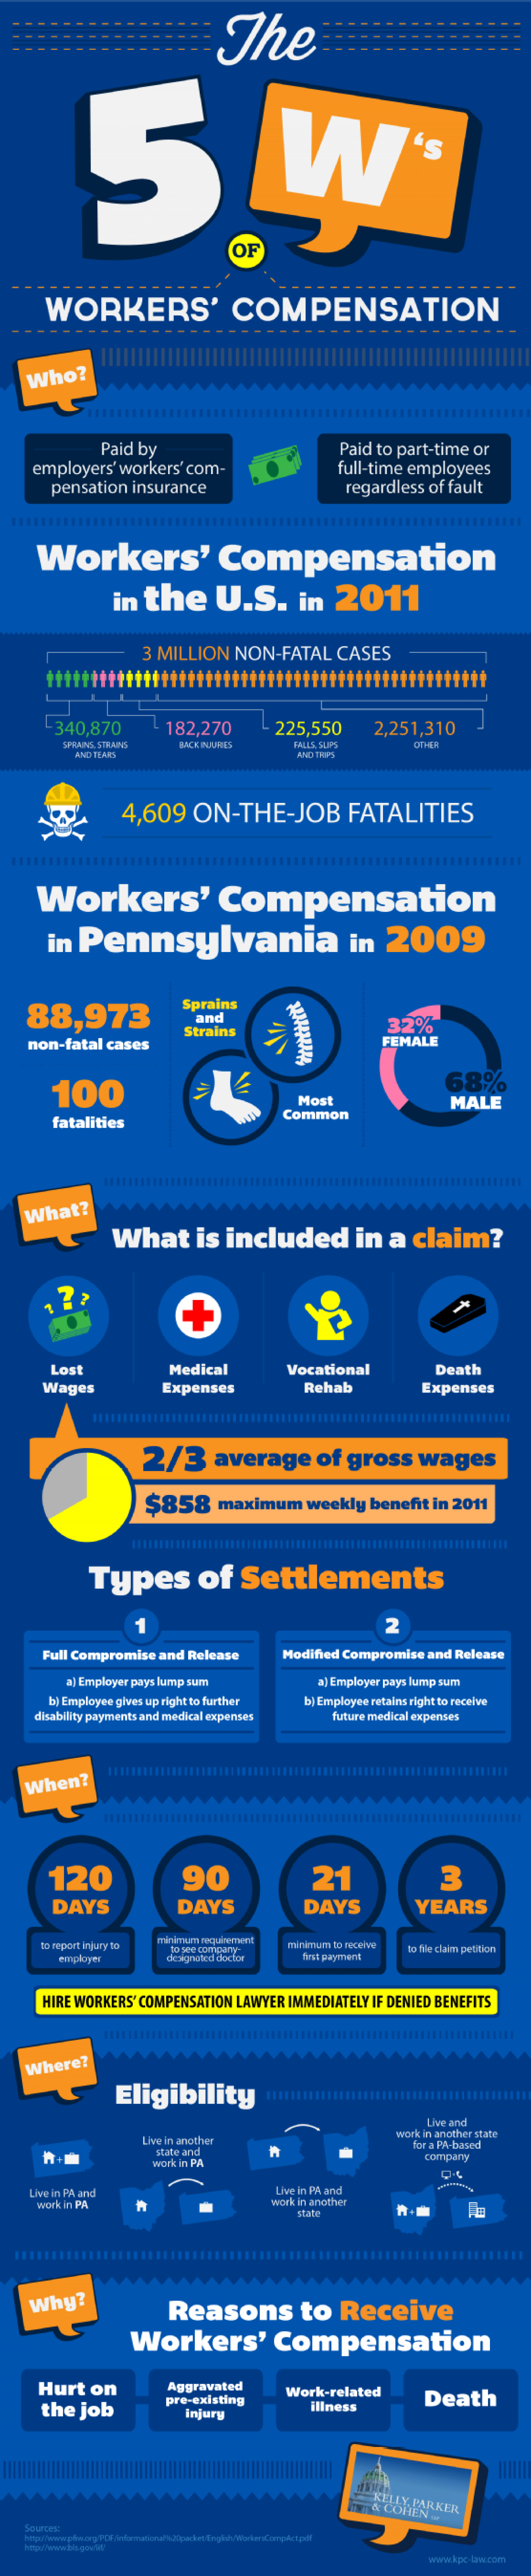 The 5 W's of Worker's Compensation Infographic